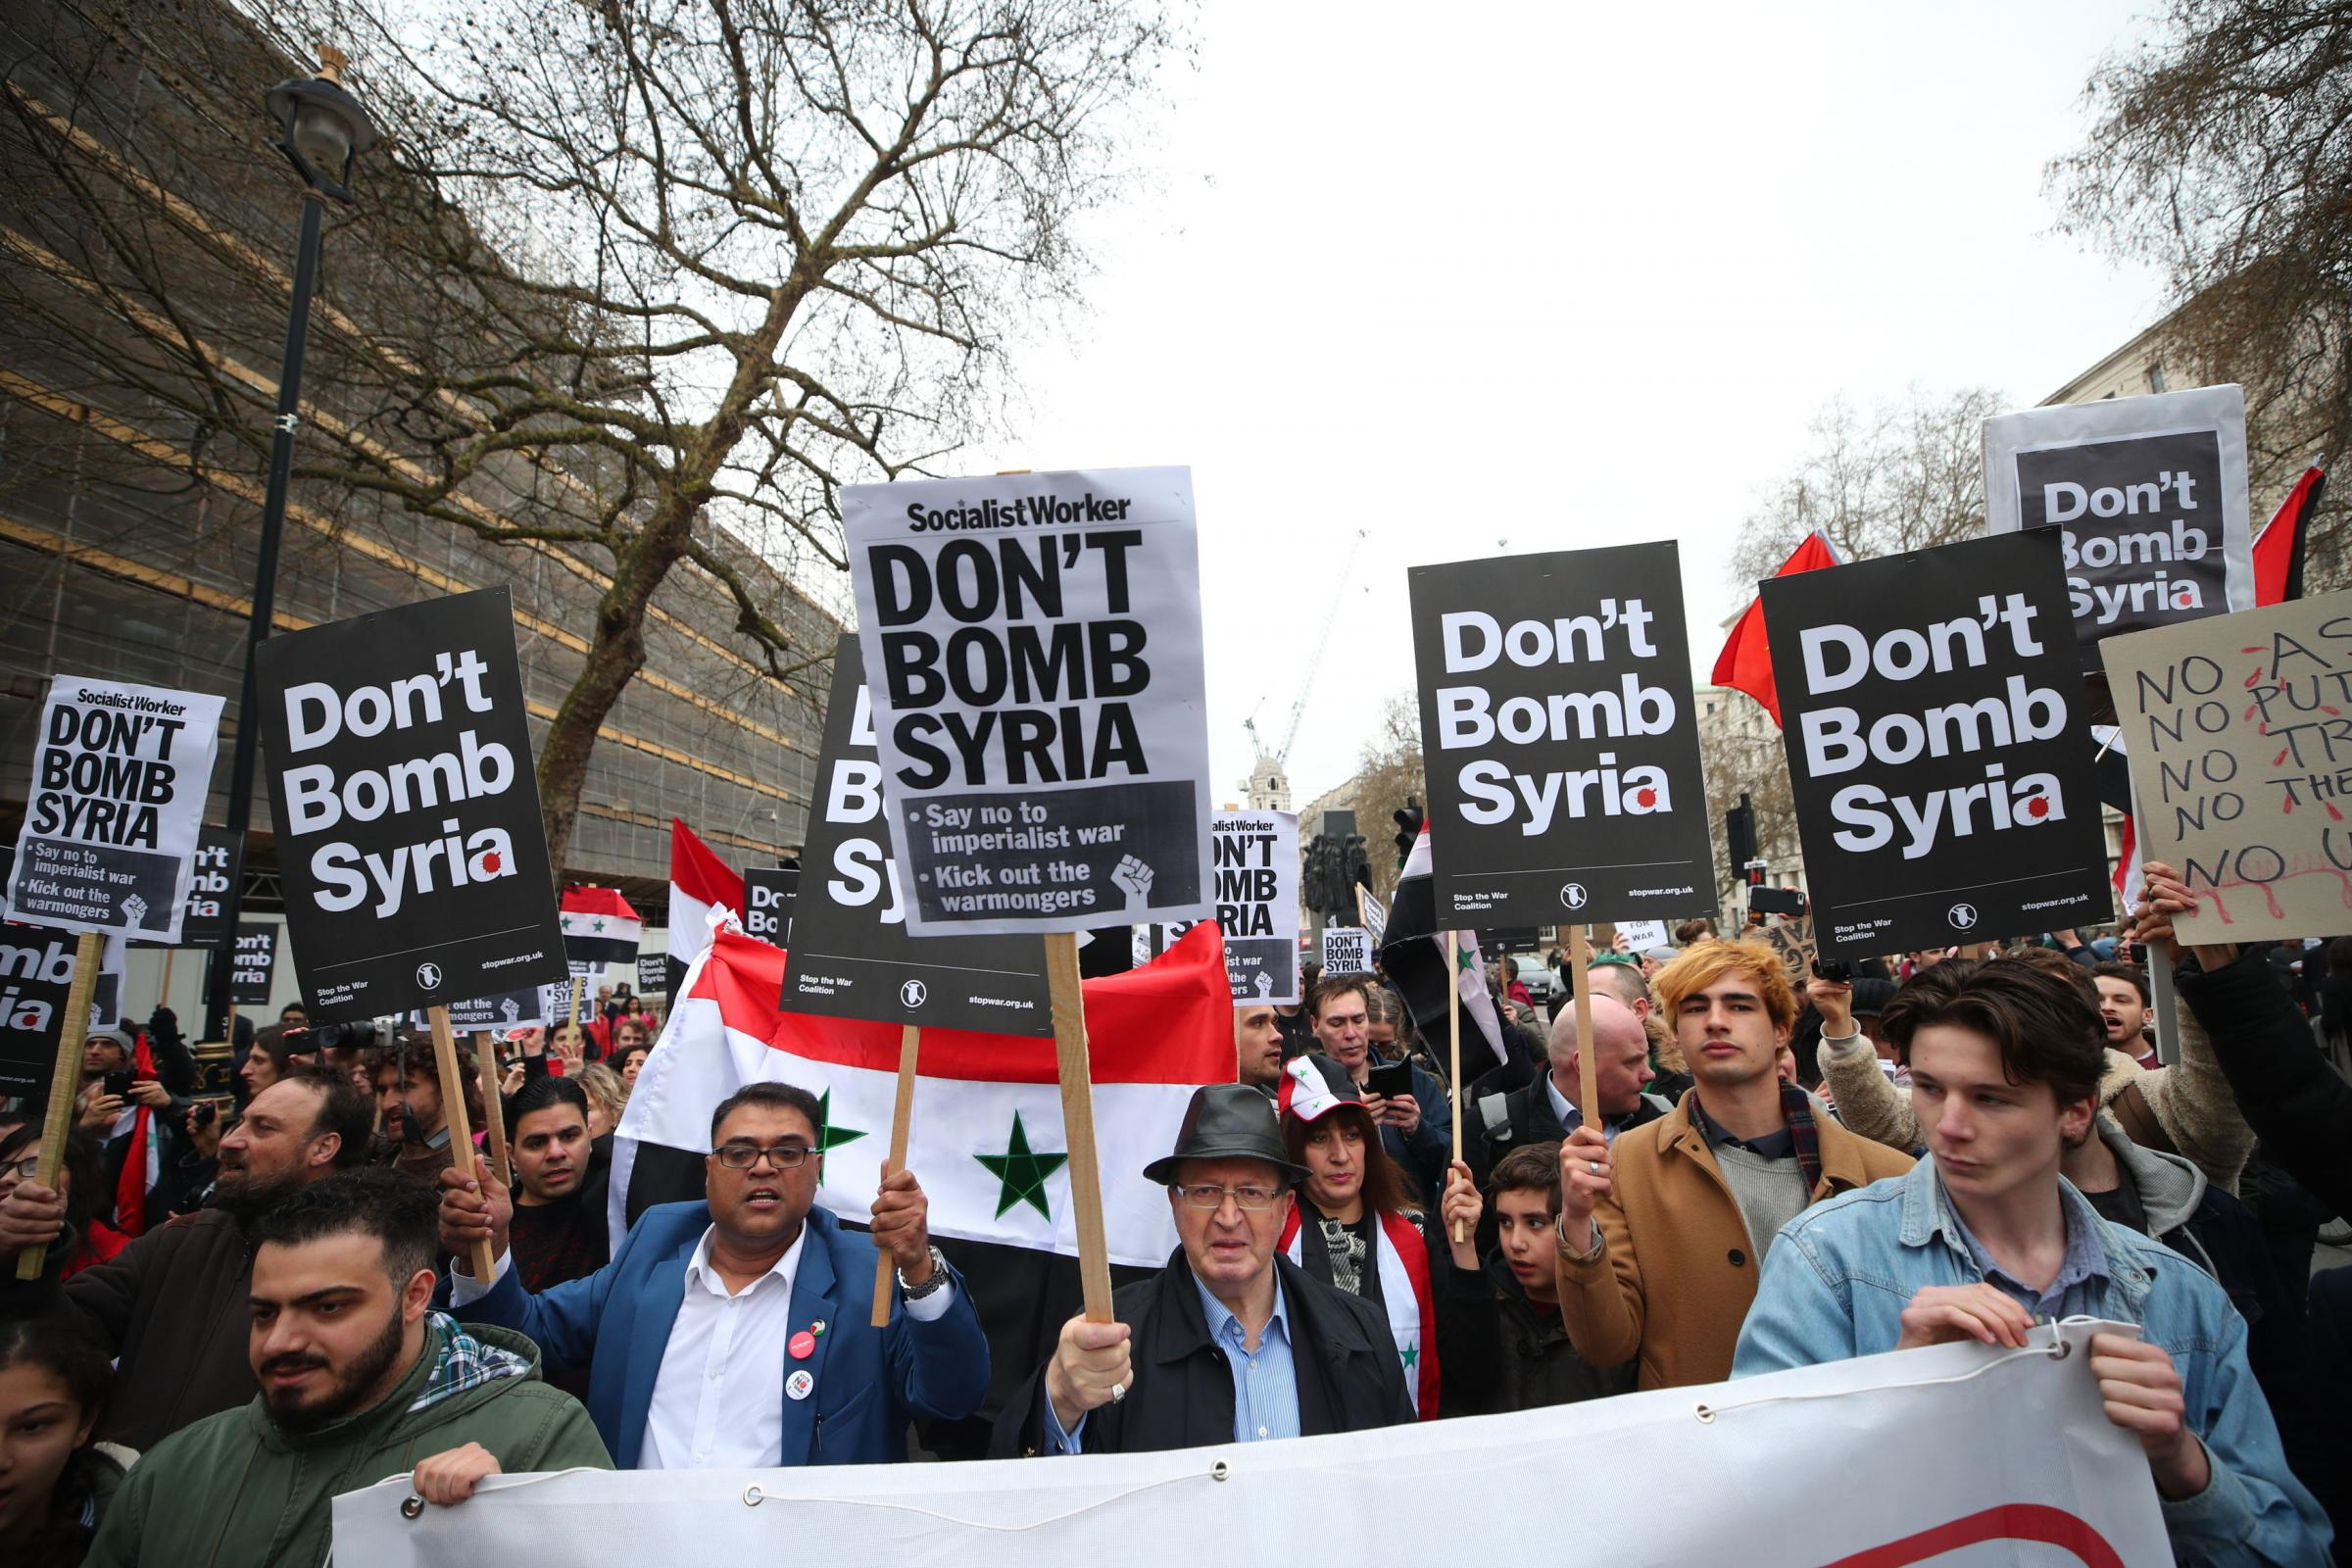 A protest on April 13 by Stop the War Coalition in Whitehall, near 10 Downing Street in London, after Labour MP Emma Dent Coad handed a letter in to Downing Street urging Theresa May not to take military action in Syria. Picture: Yui Mok/PA Wire